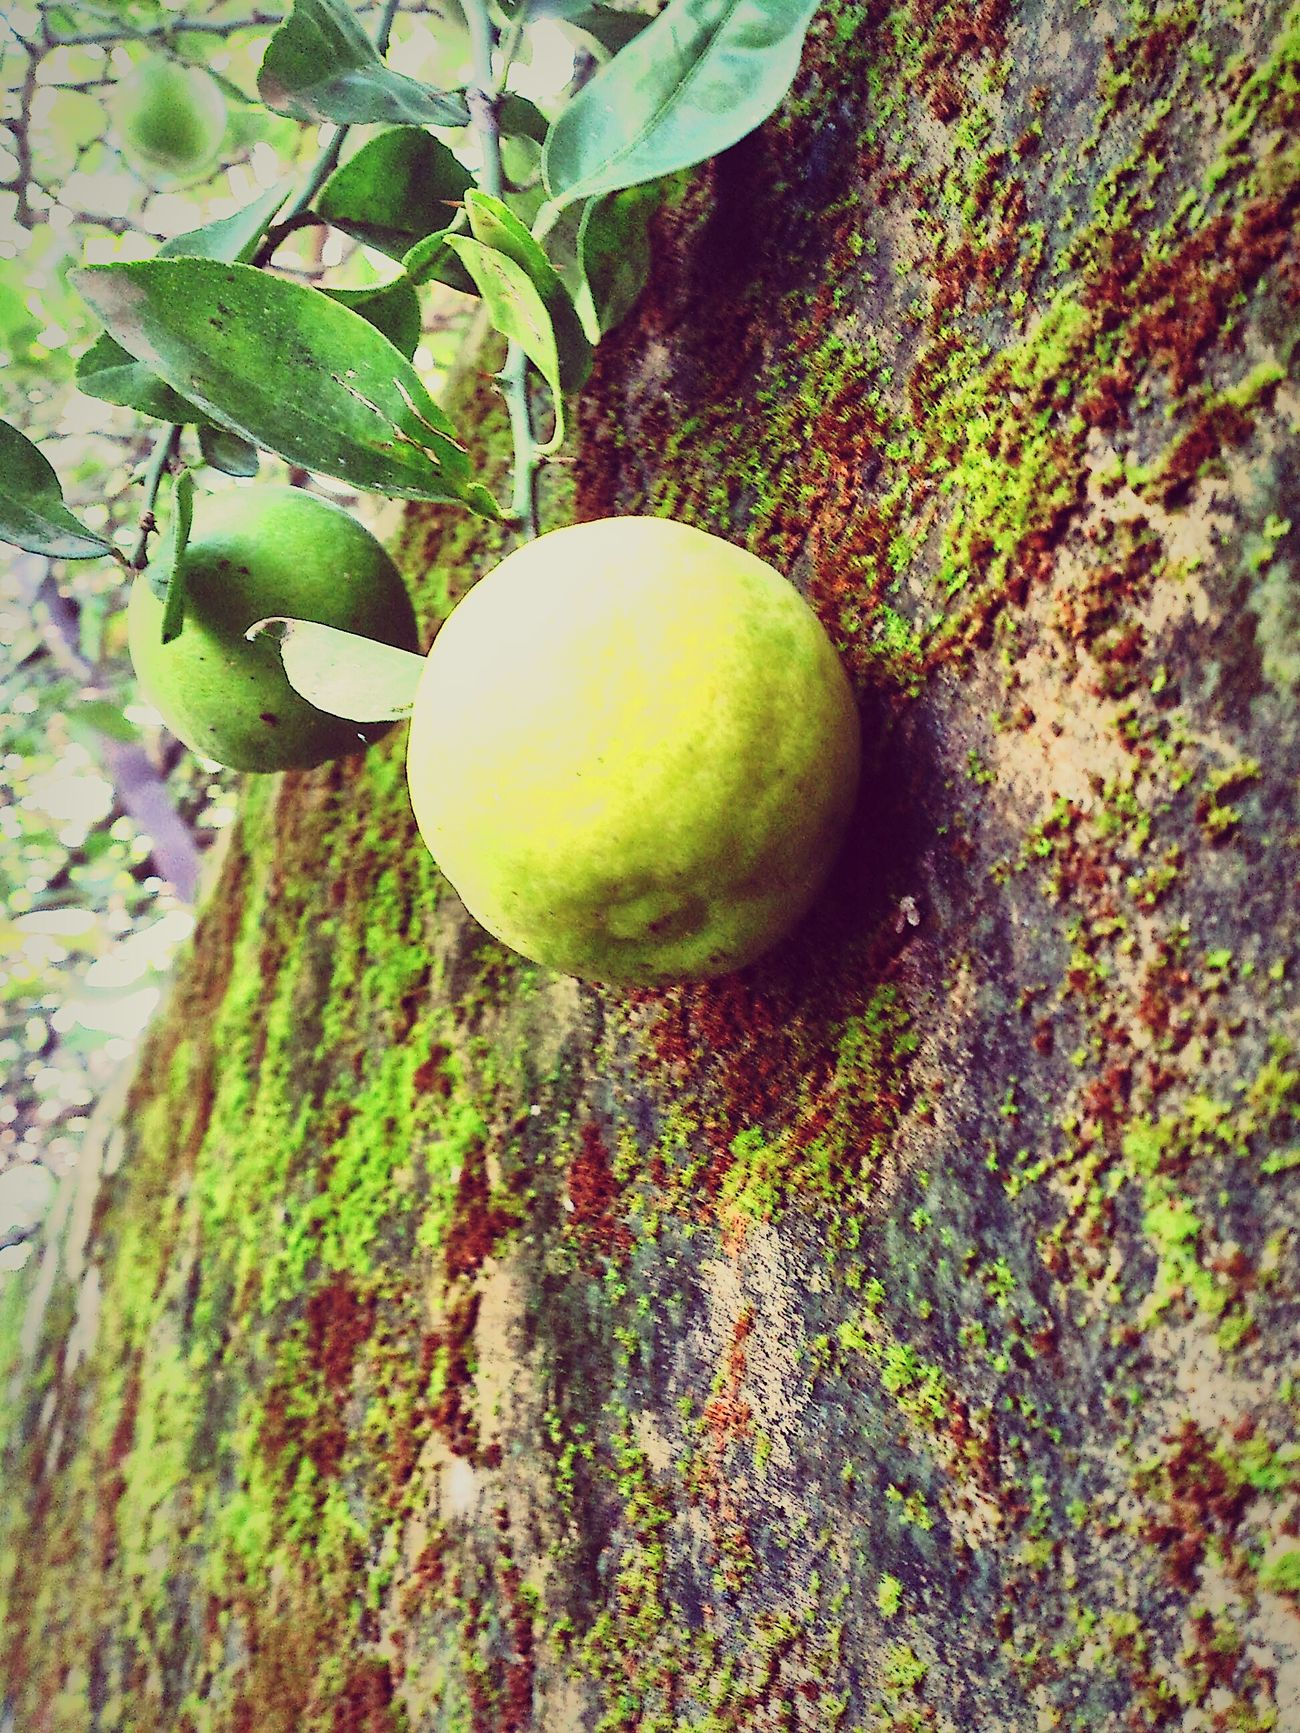 Violet By Motorola Nature Photography Green Lemon Lime By Motorola Limegreen Real Life